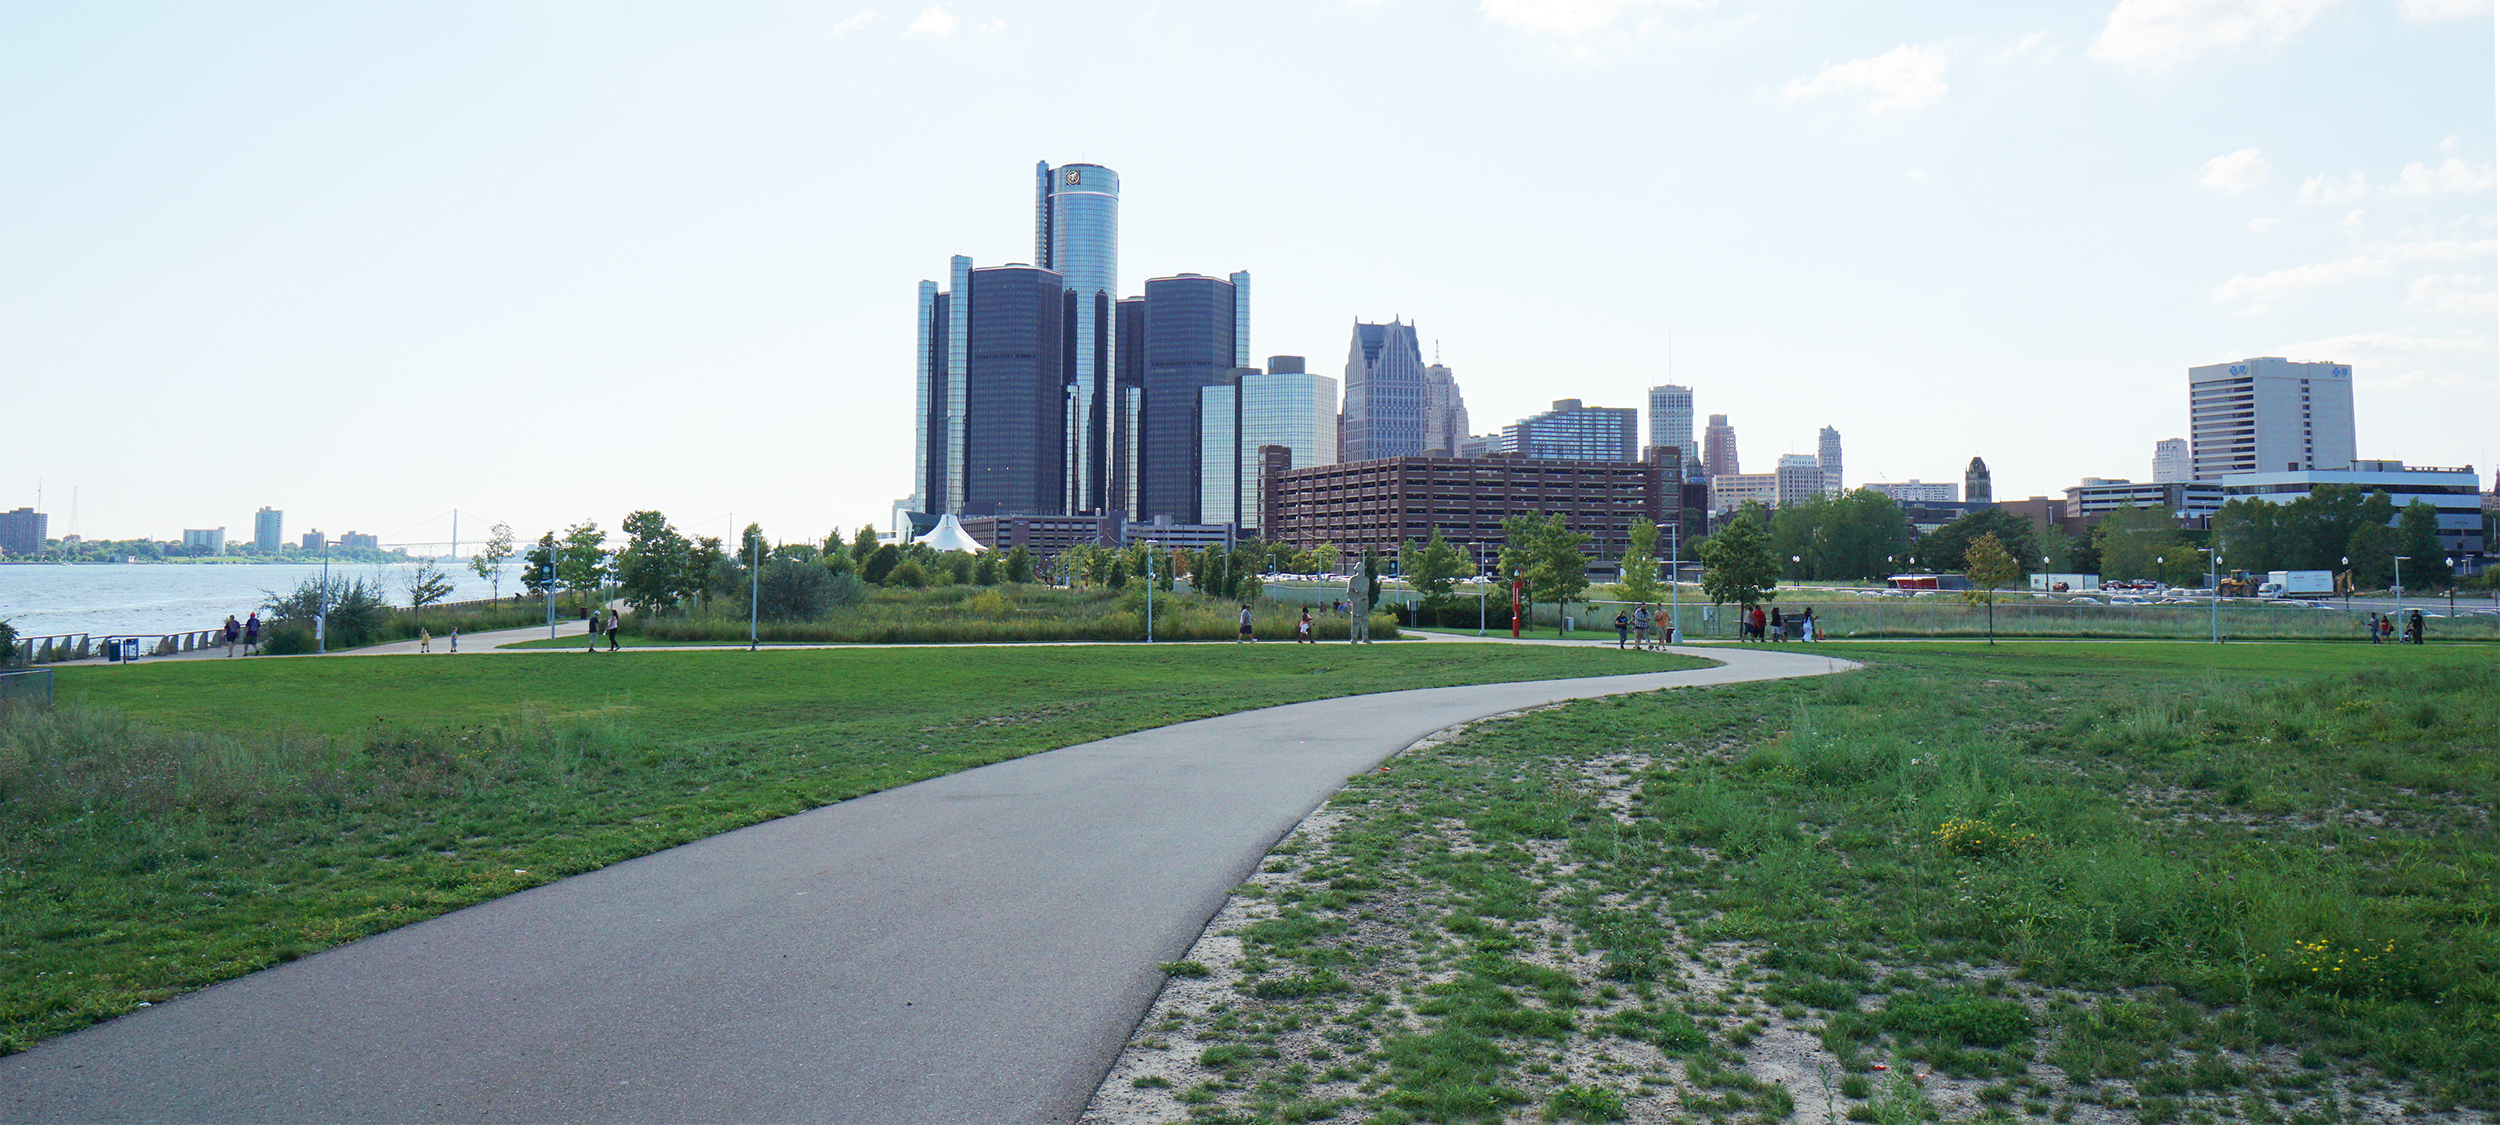 The Dequindre Cut path goes to the Riverwalk, where you can take it to the landmark GM buildings